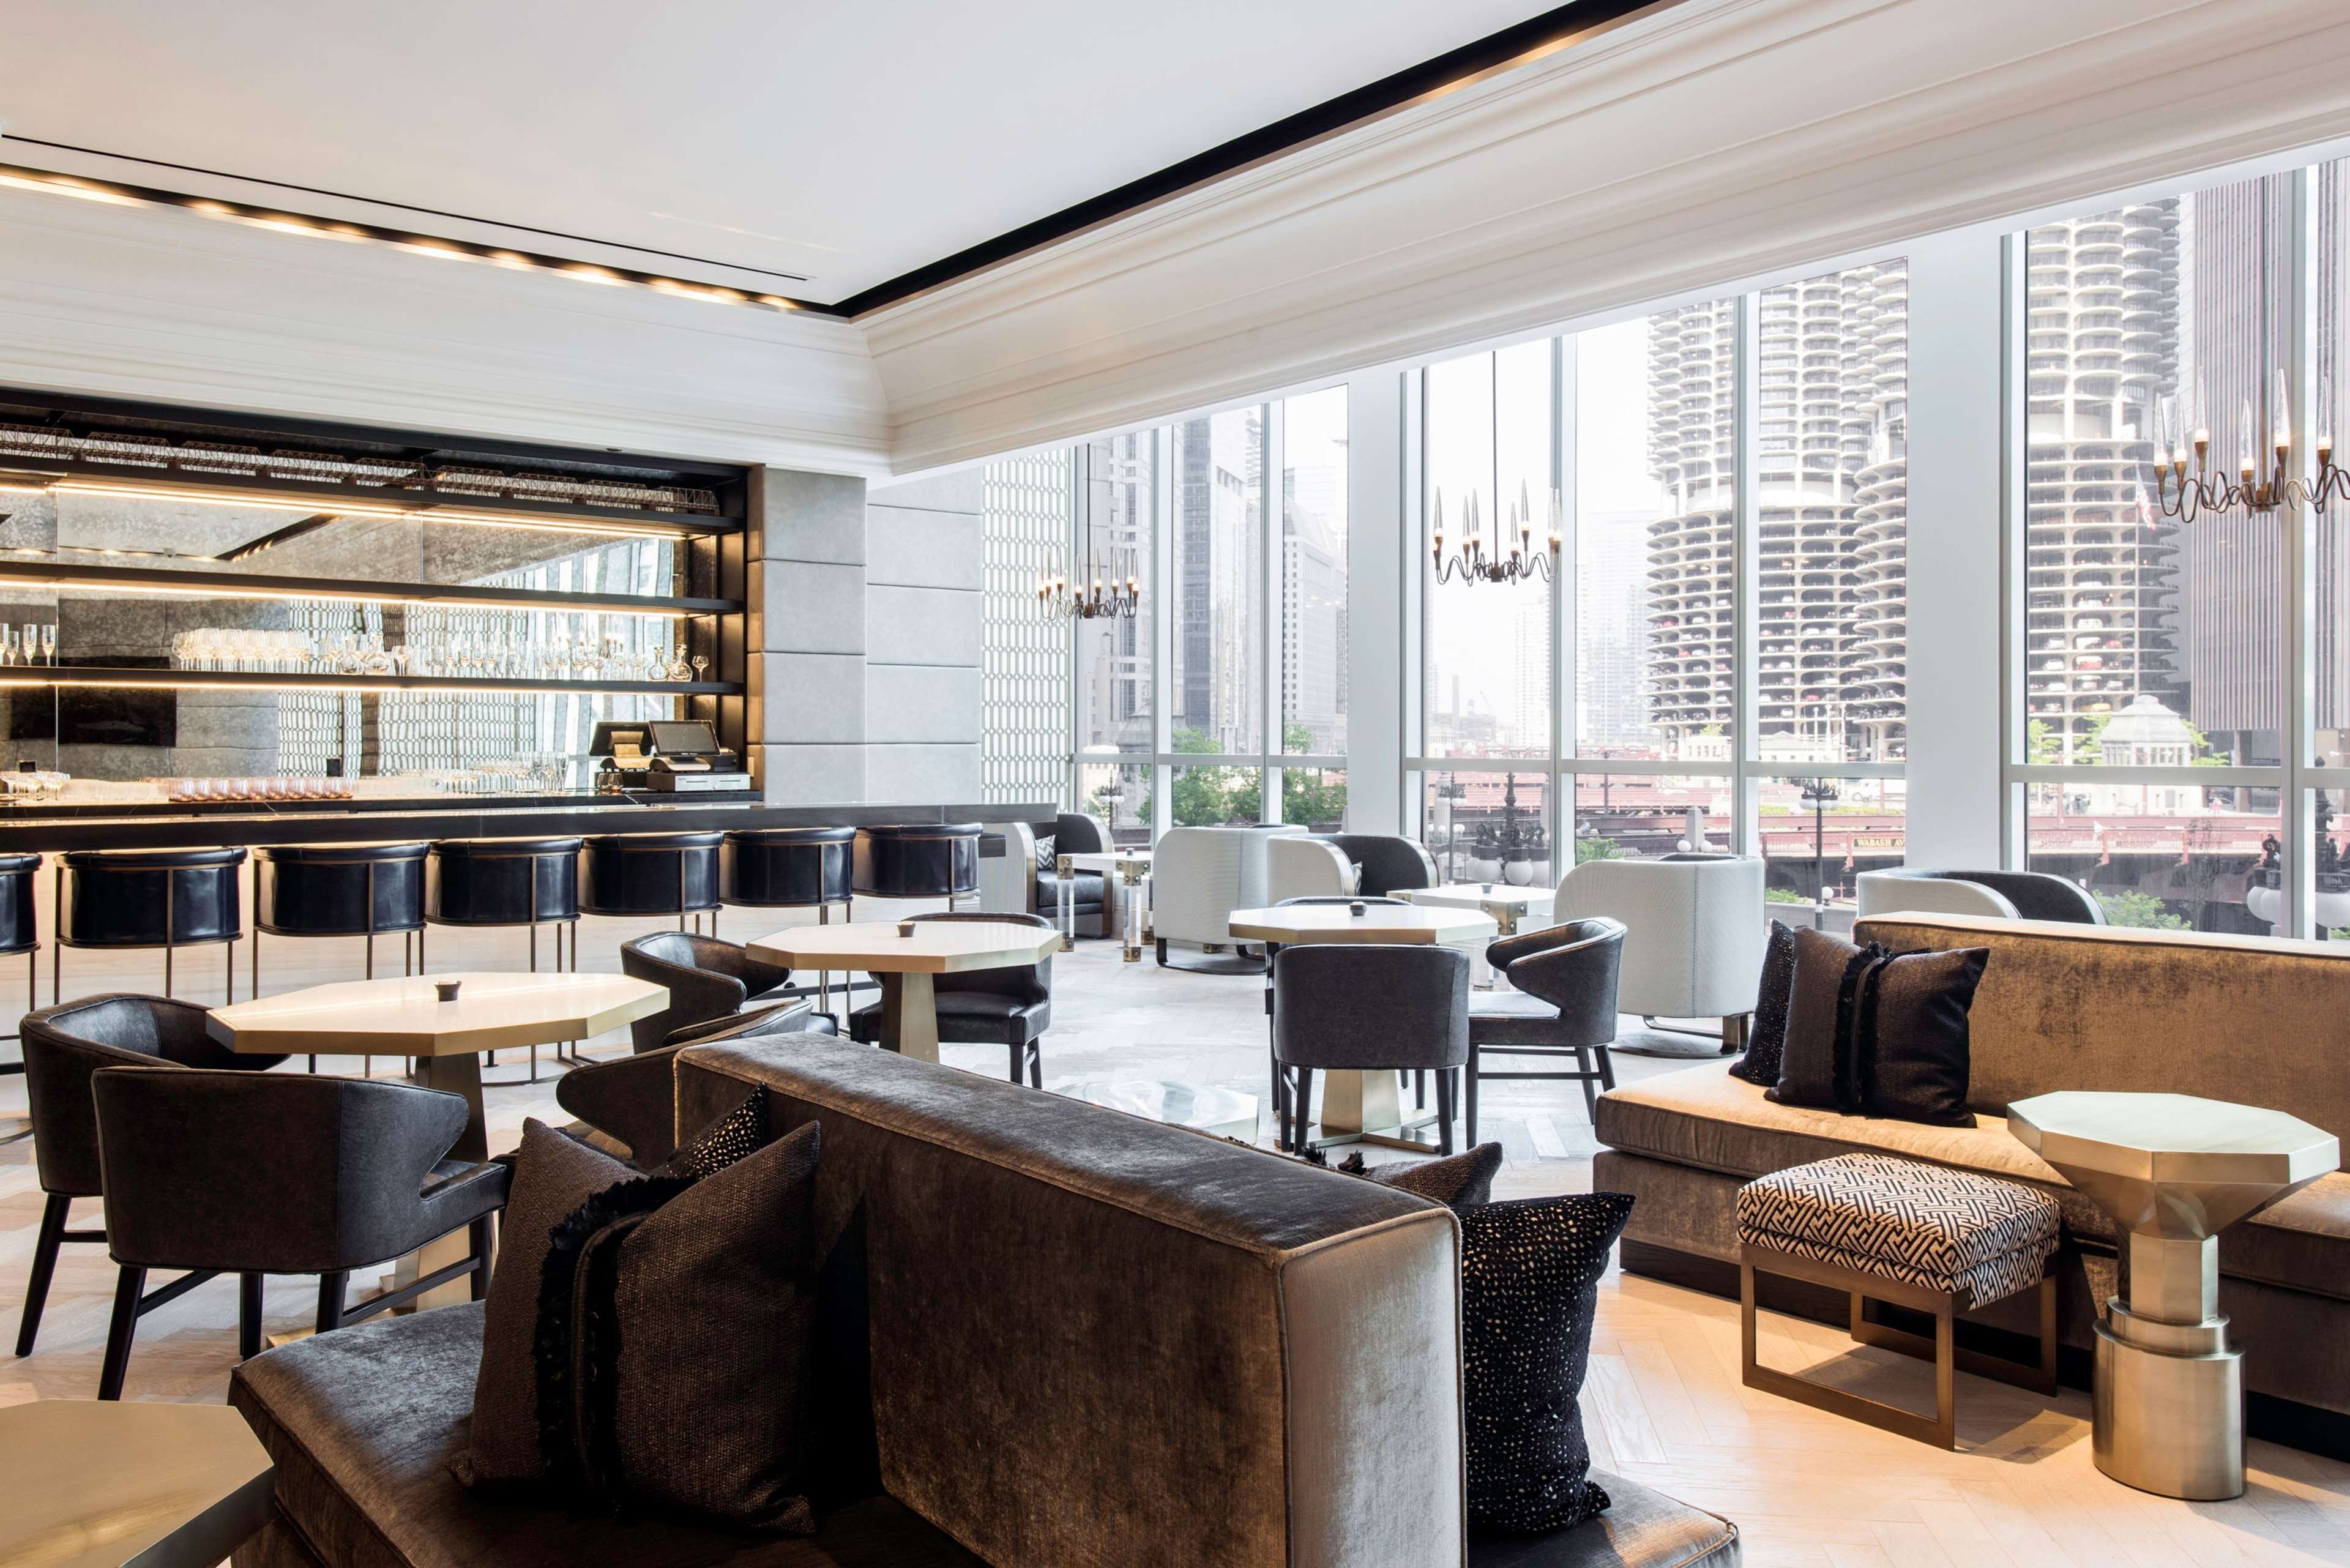 LondonHouse Chicago, Curio Collection by Hilton image 43